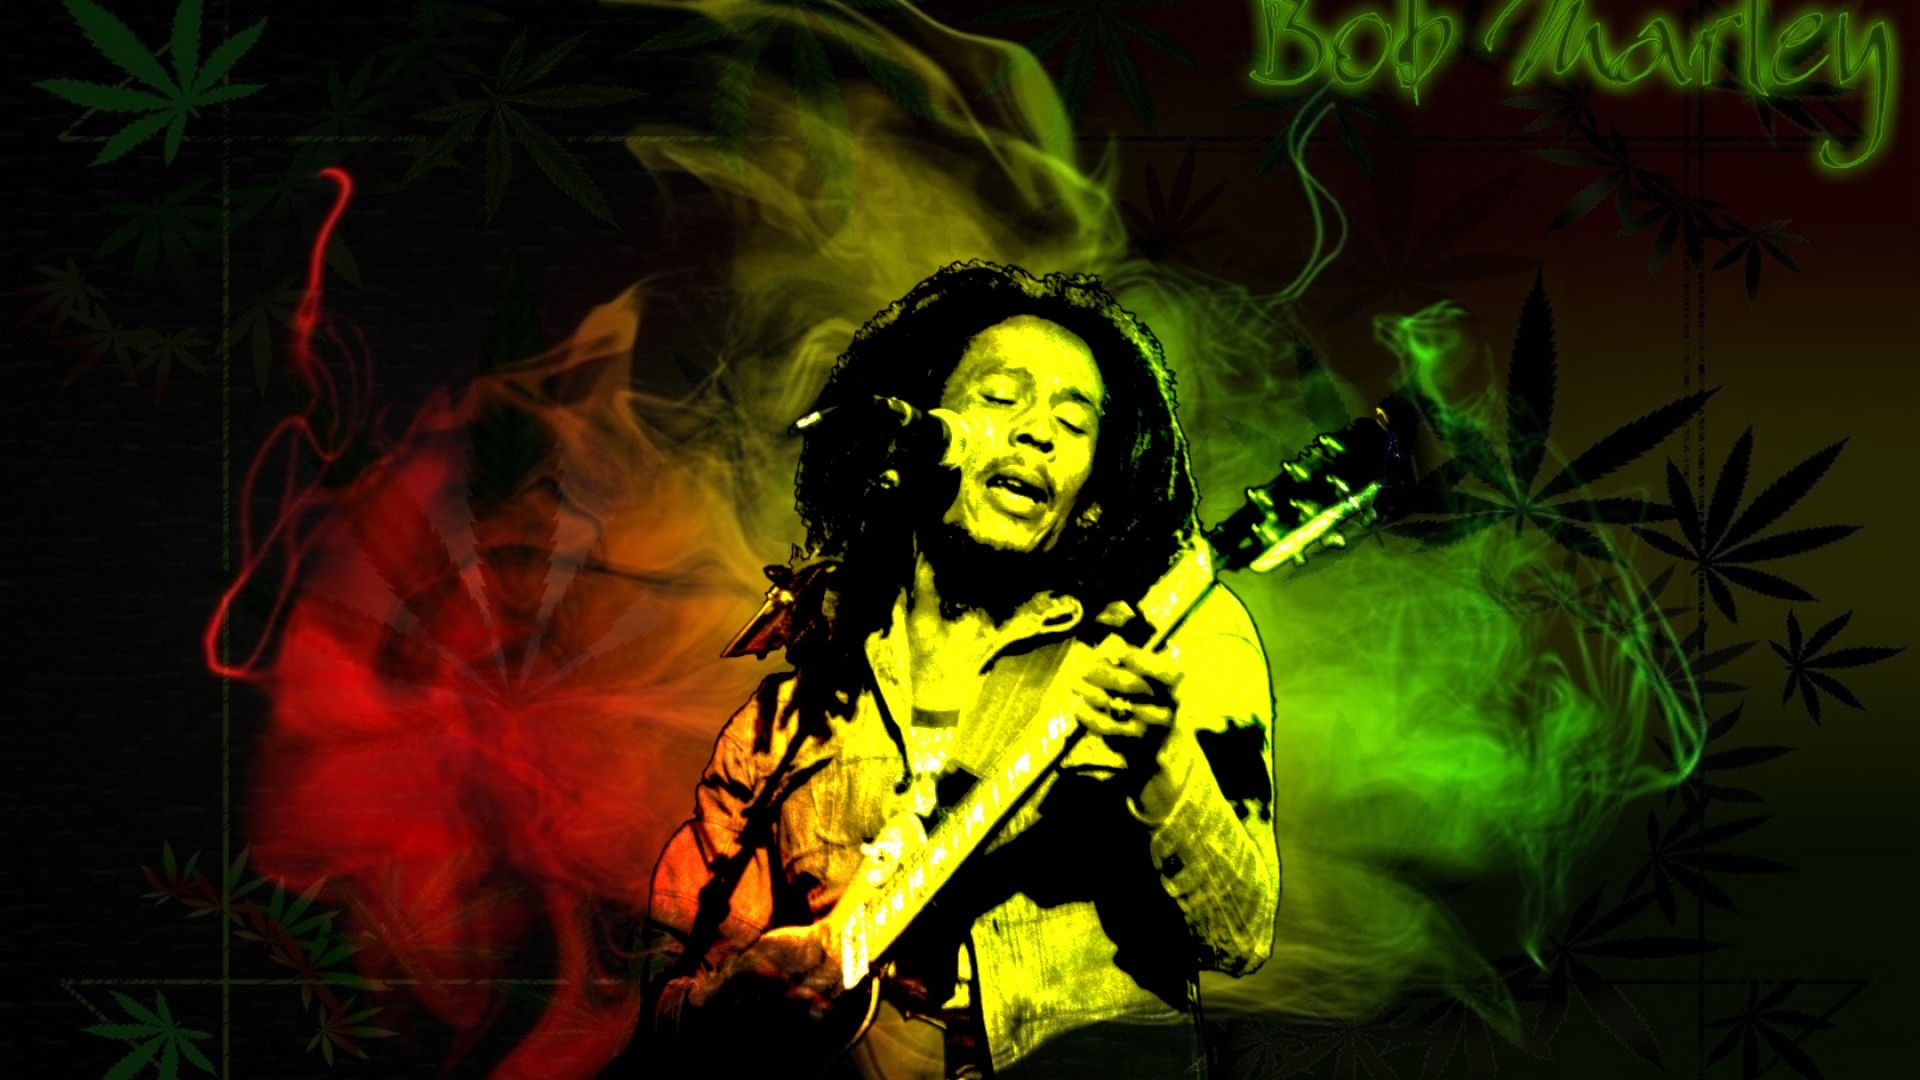 Image For Bob Marley Poster One Love Wallpaper Rasta In 2019